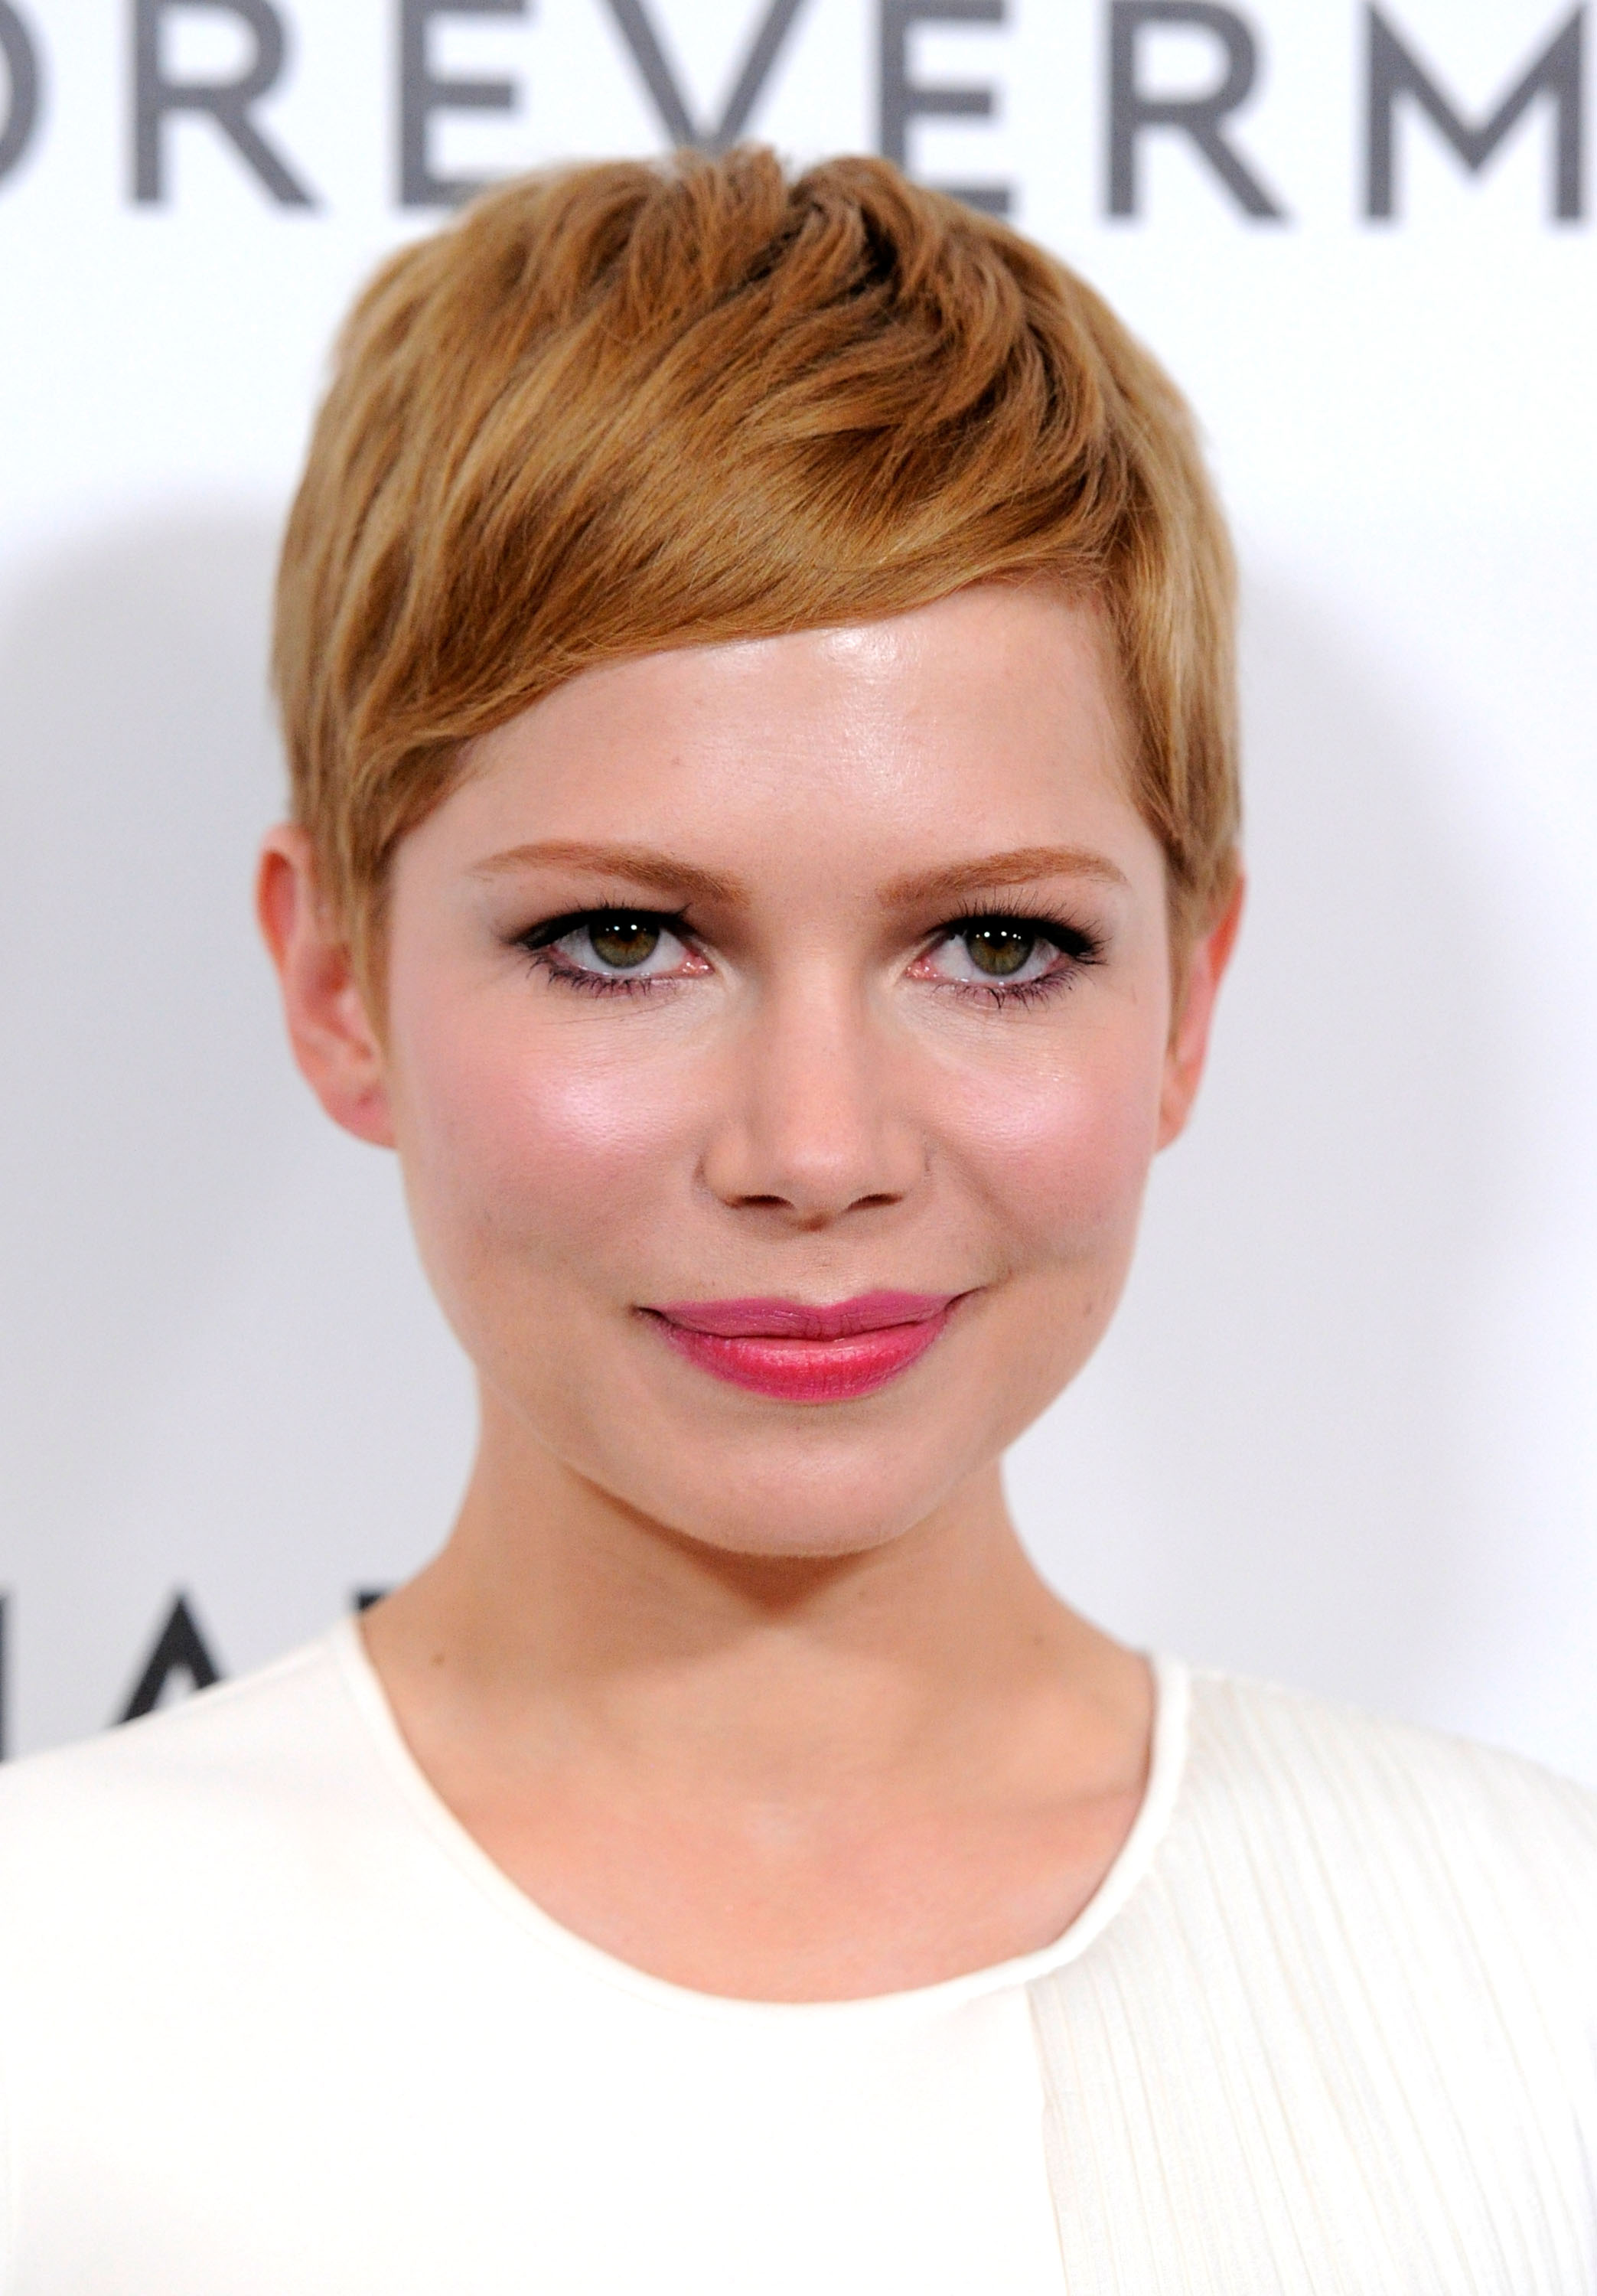 Excellent 34 Pixie Hairstyles And Cuts Celebrities With Pixies Hairstyle Inspiration Daily Dogsangcom